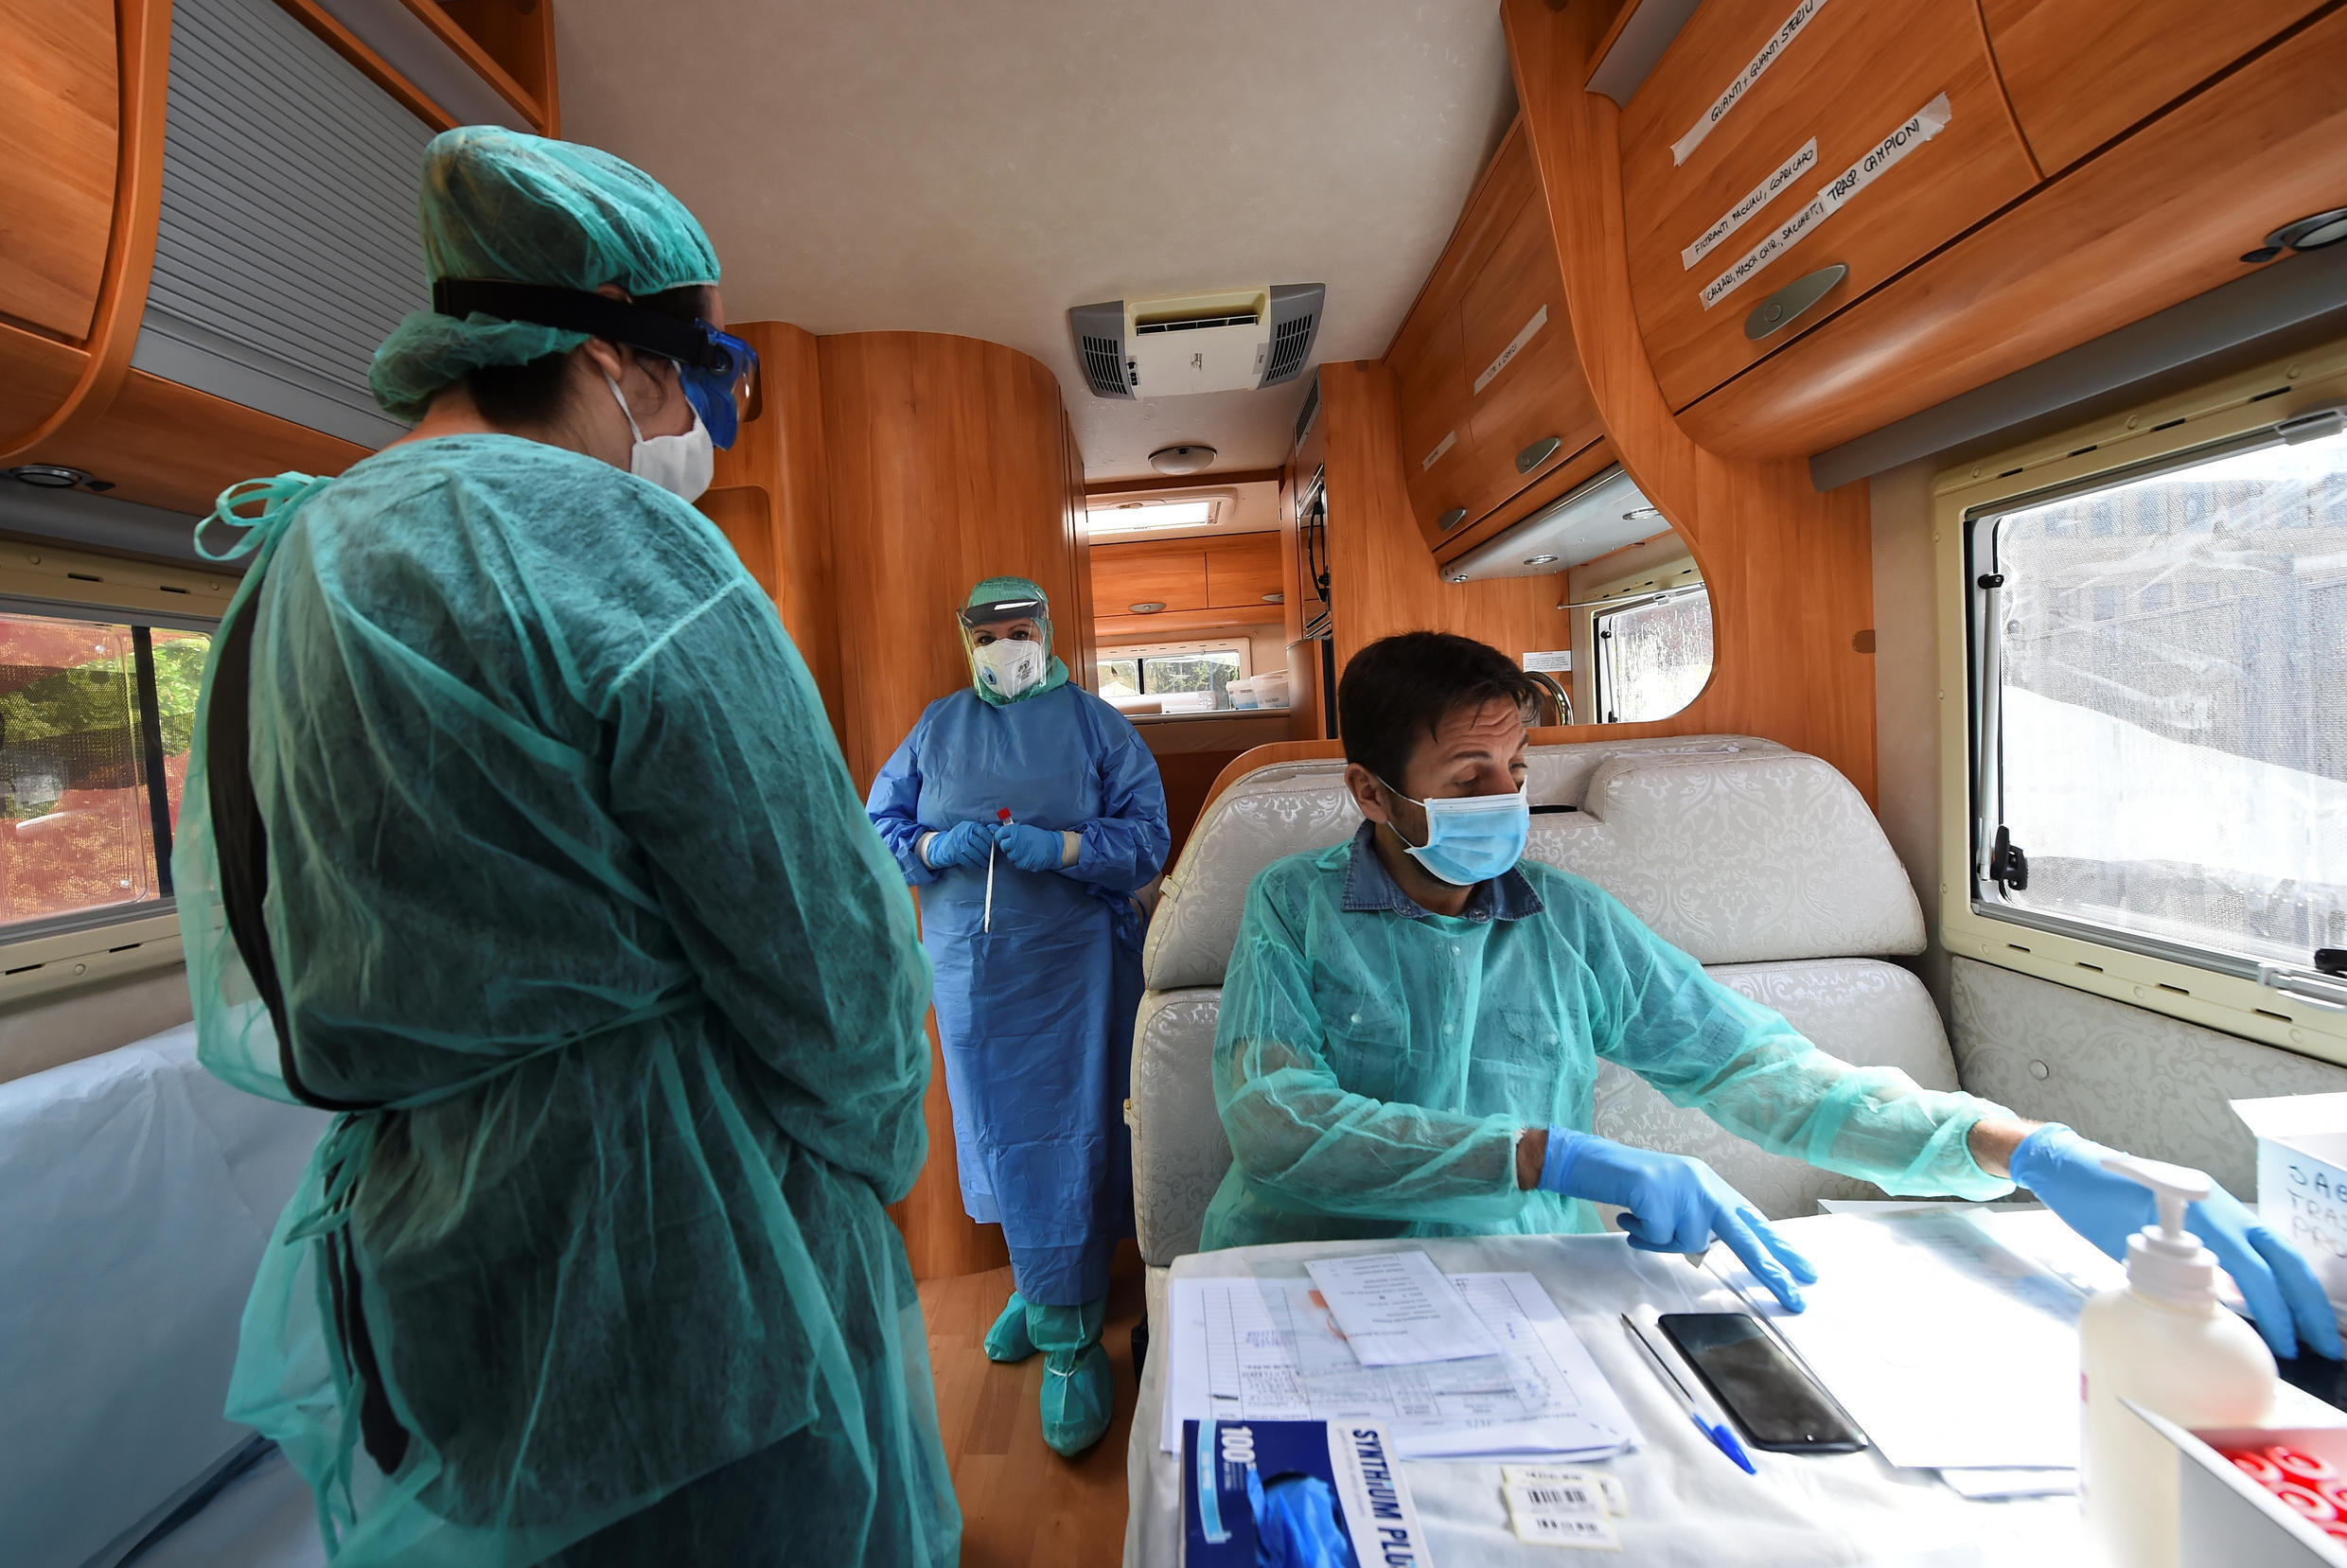 Medical workers in protective gear sit in a camper van preparing to test people nearing the end of their quarantine period in Turin, Italy, on April 16, 2020.